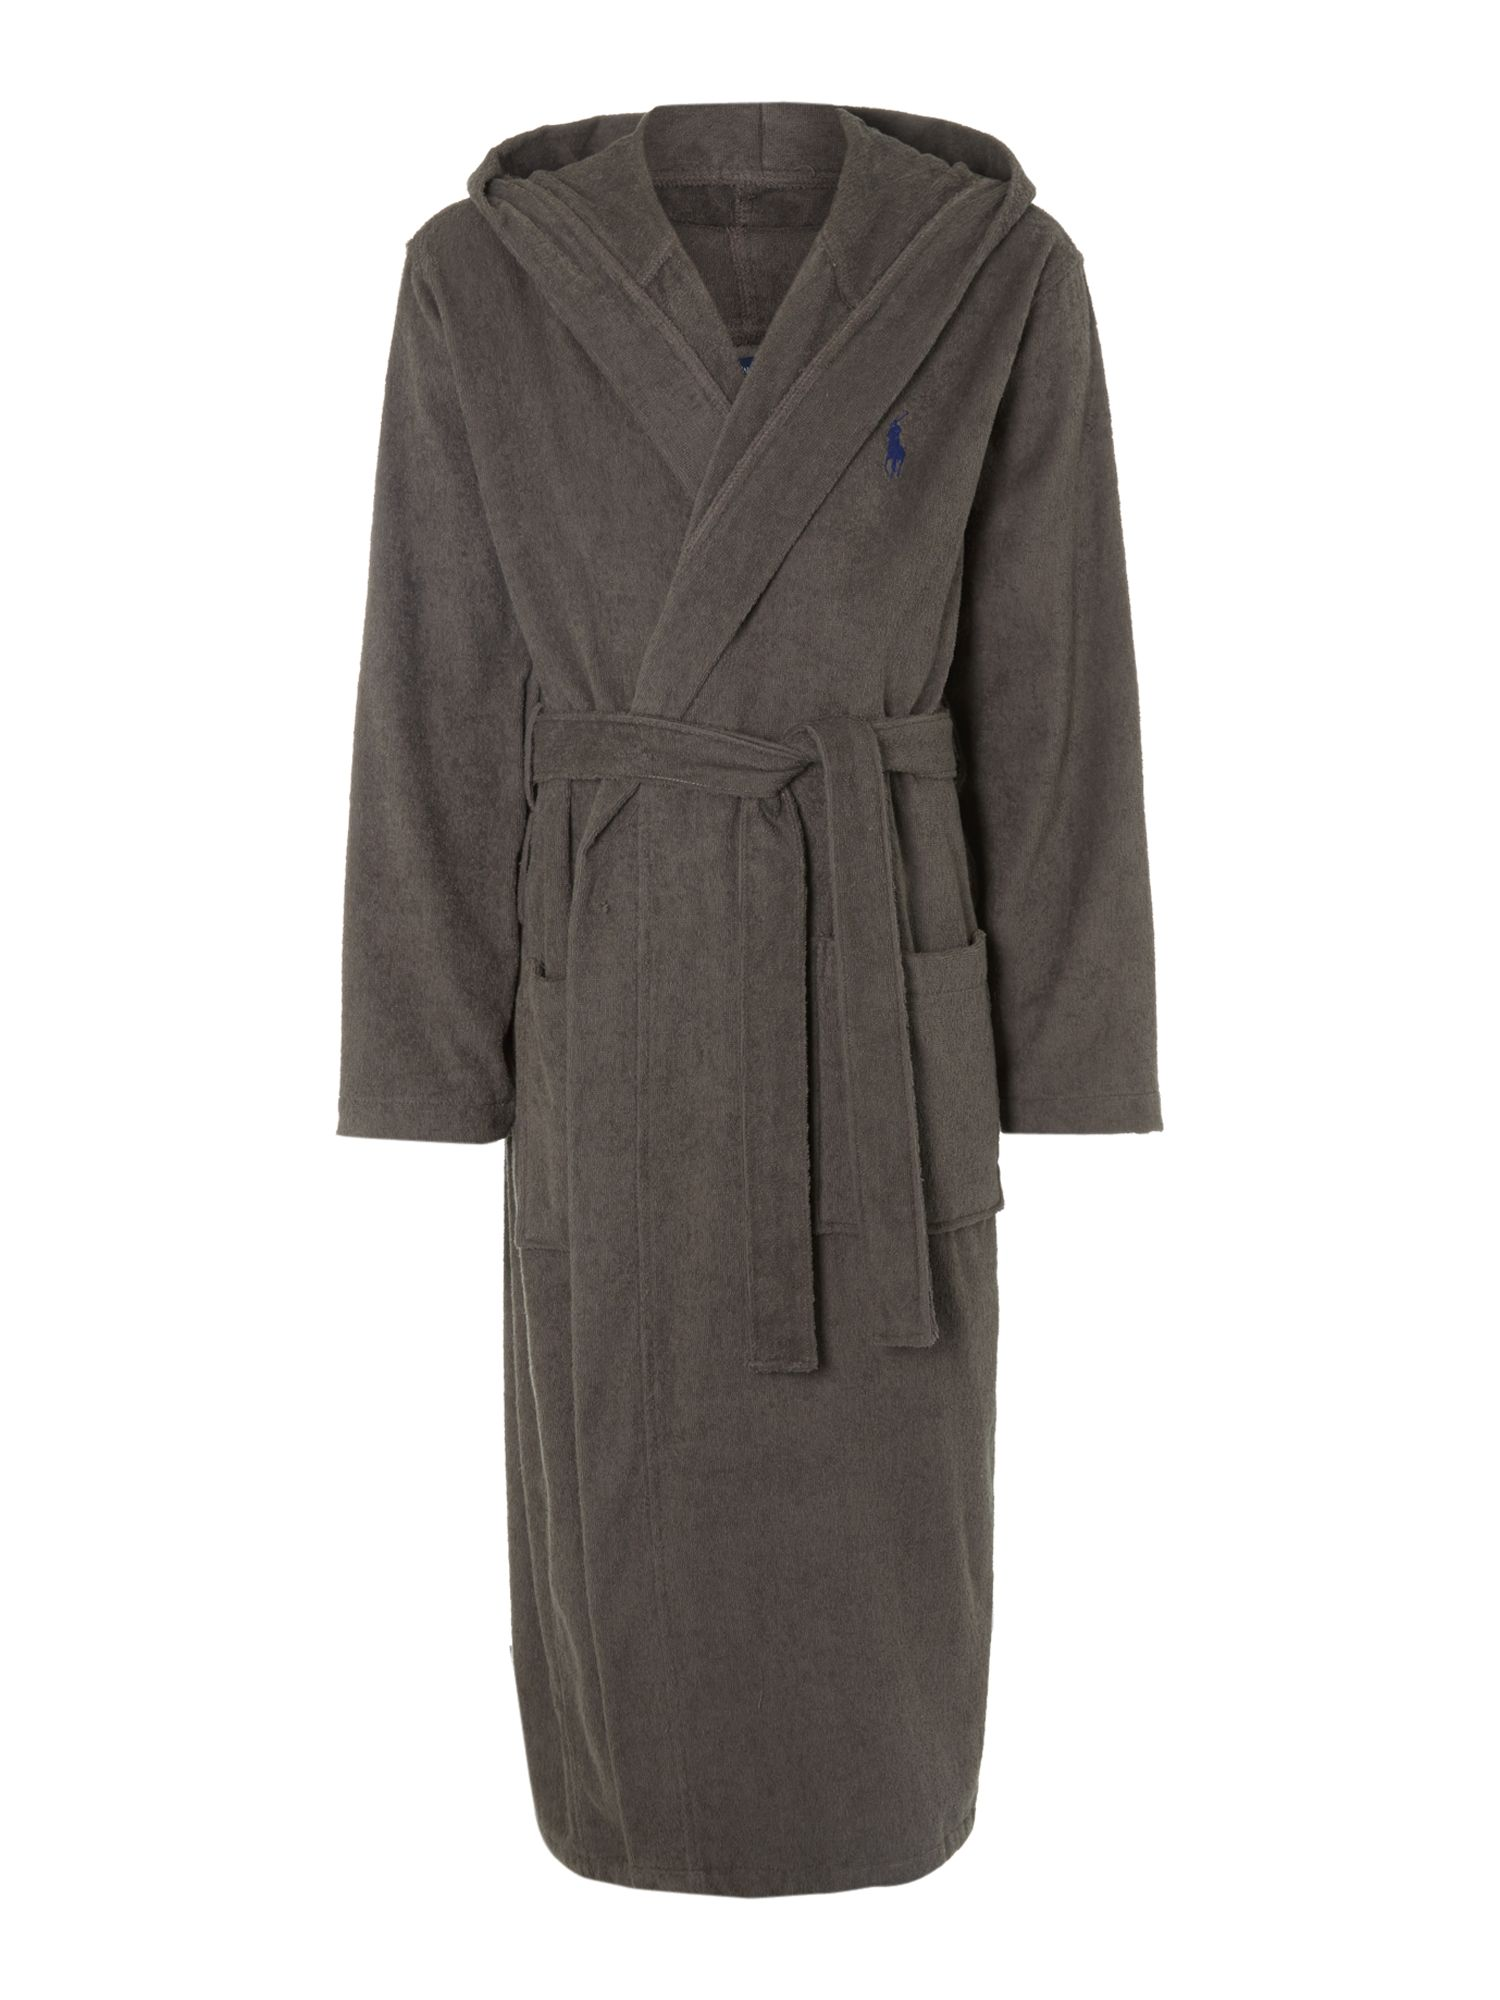 polo ralph lauren nightwear robe in gray for men grey lyst. Black Bedroom Furniture Sets. Home Design Ideas